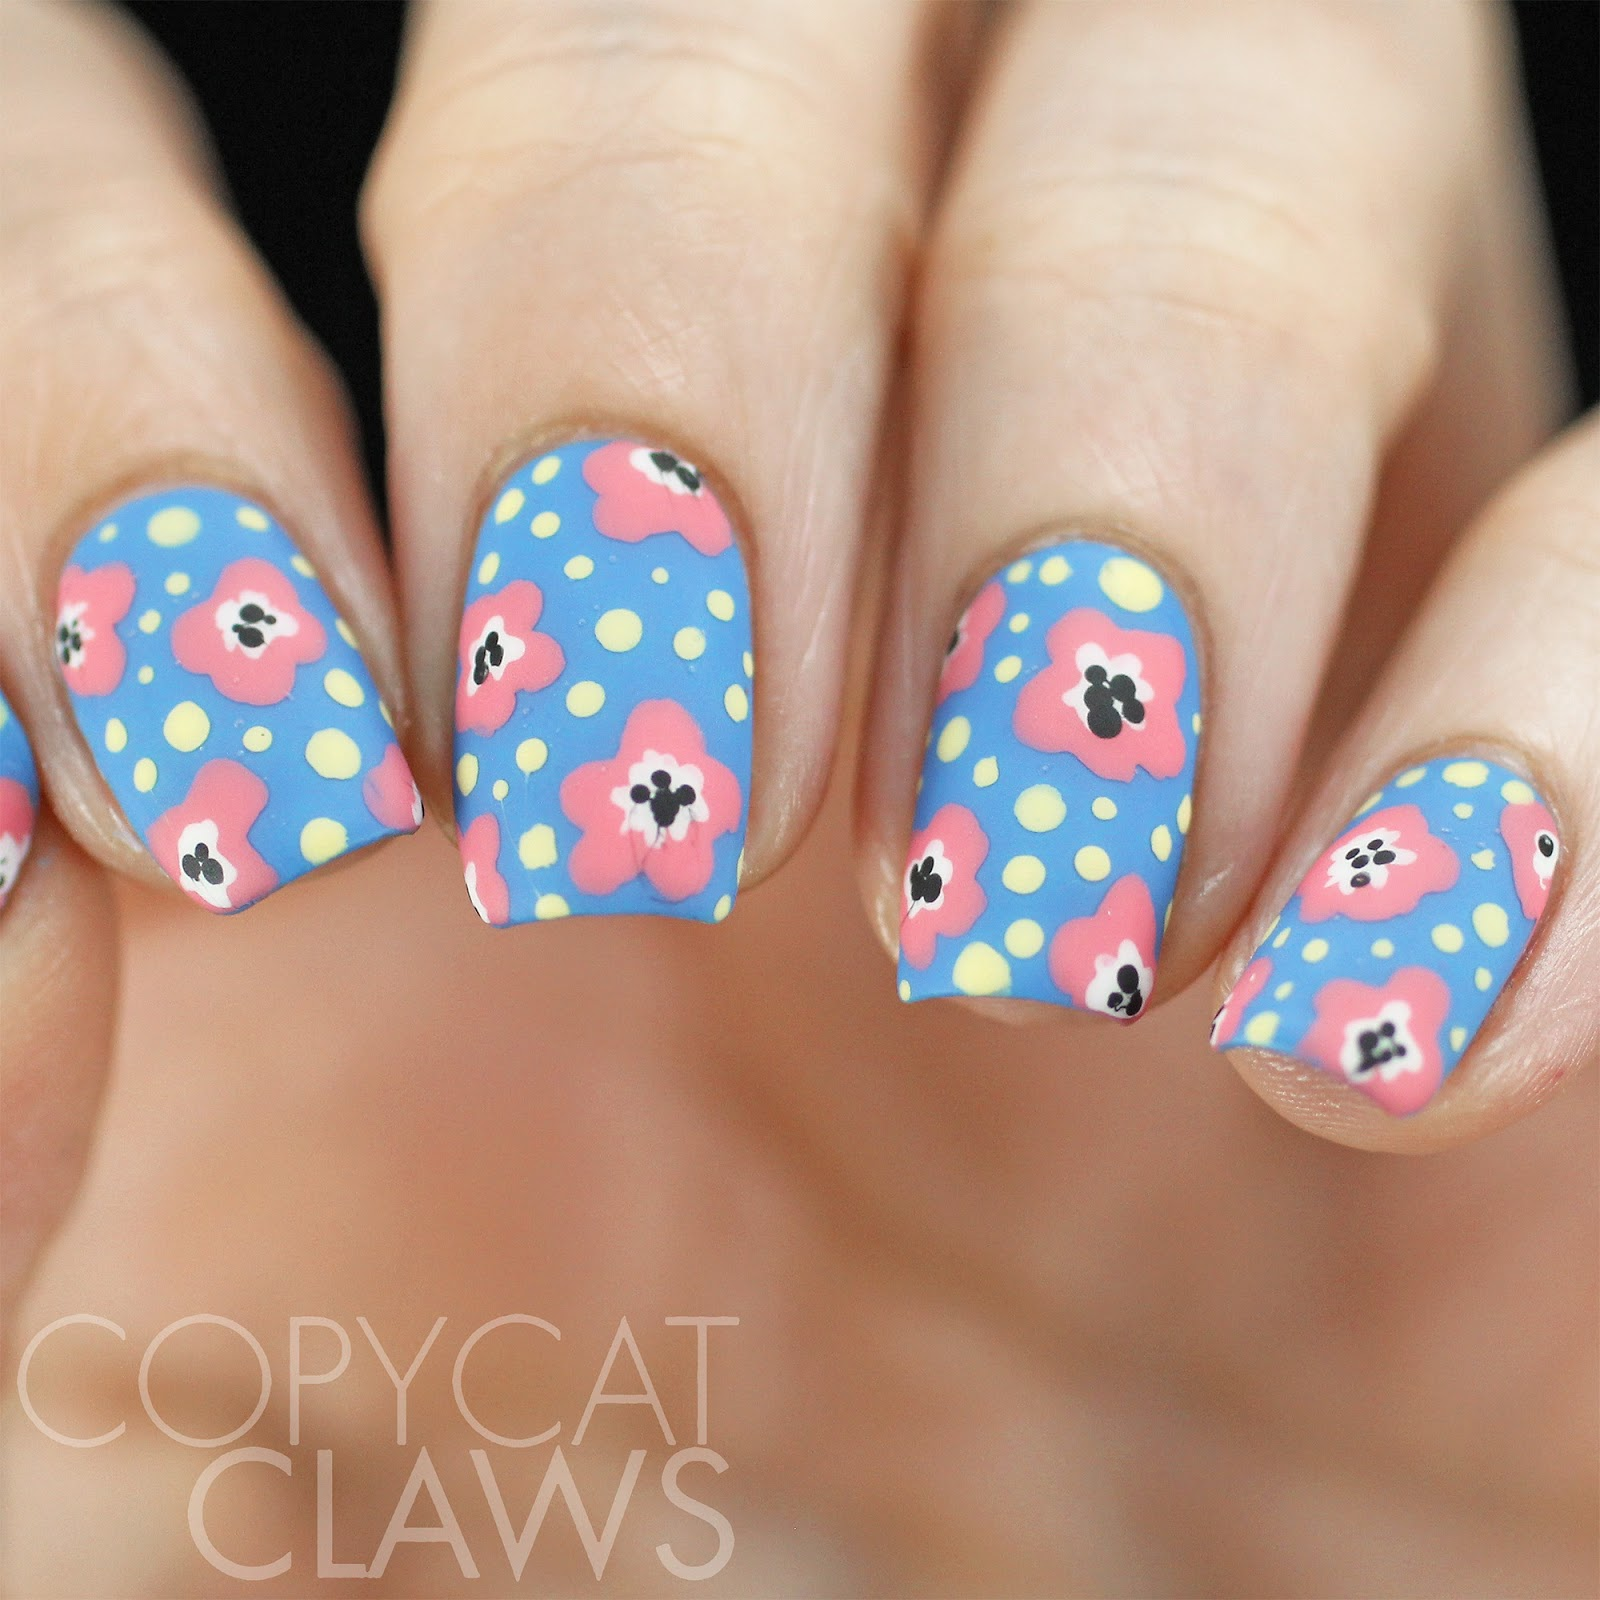 Copycat claws 40 great nail art ideas floral for these i used two coats of opi rich girls po boys as a base the flowers were done with got myself into a jam balaya and white and black solutioingenieria Choice Image